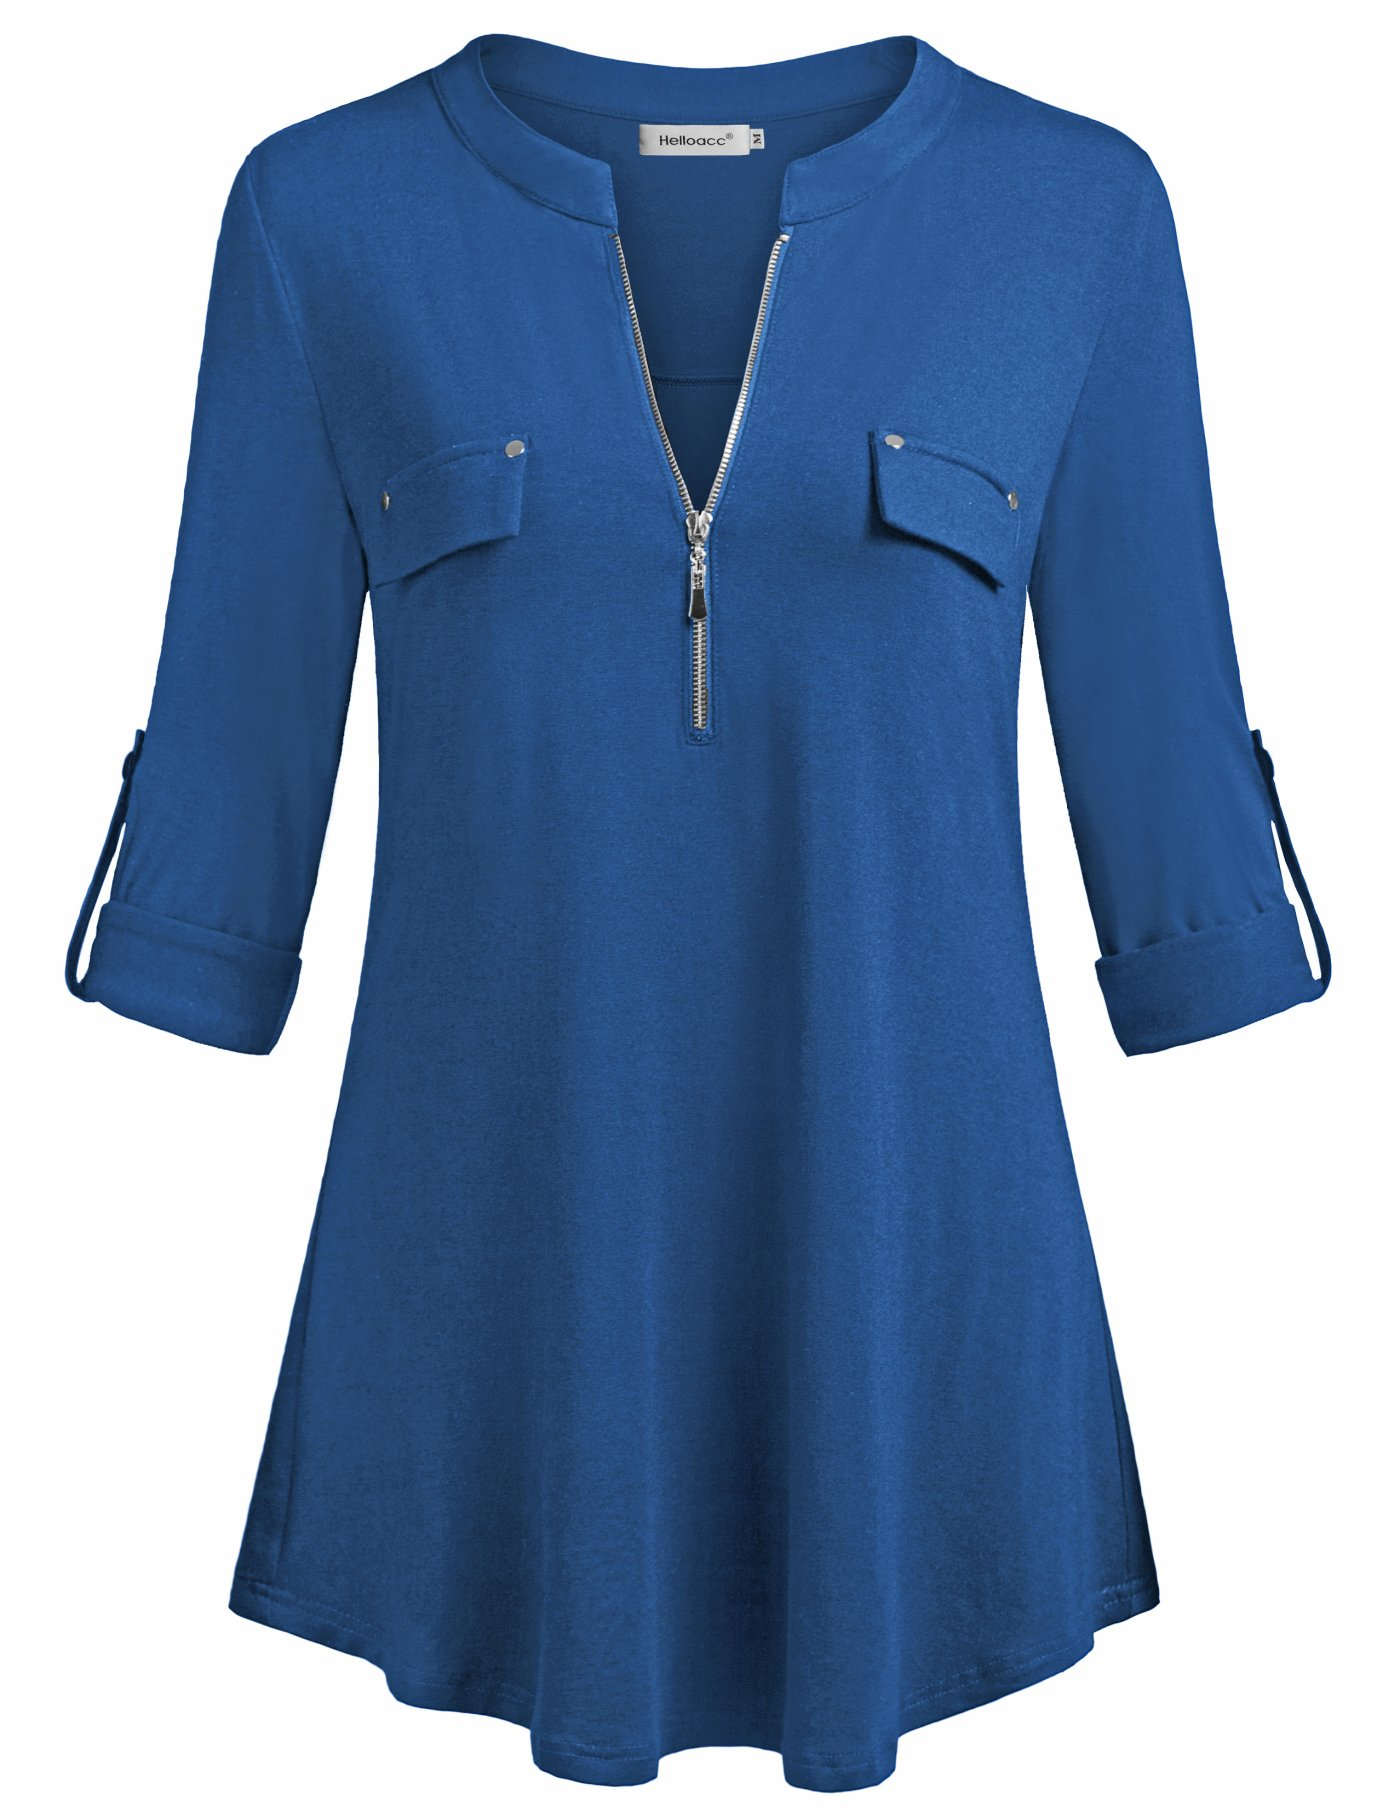 Helloacc Ladies Tunic Tops Solid Color Pullover Long Sleeves 70s